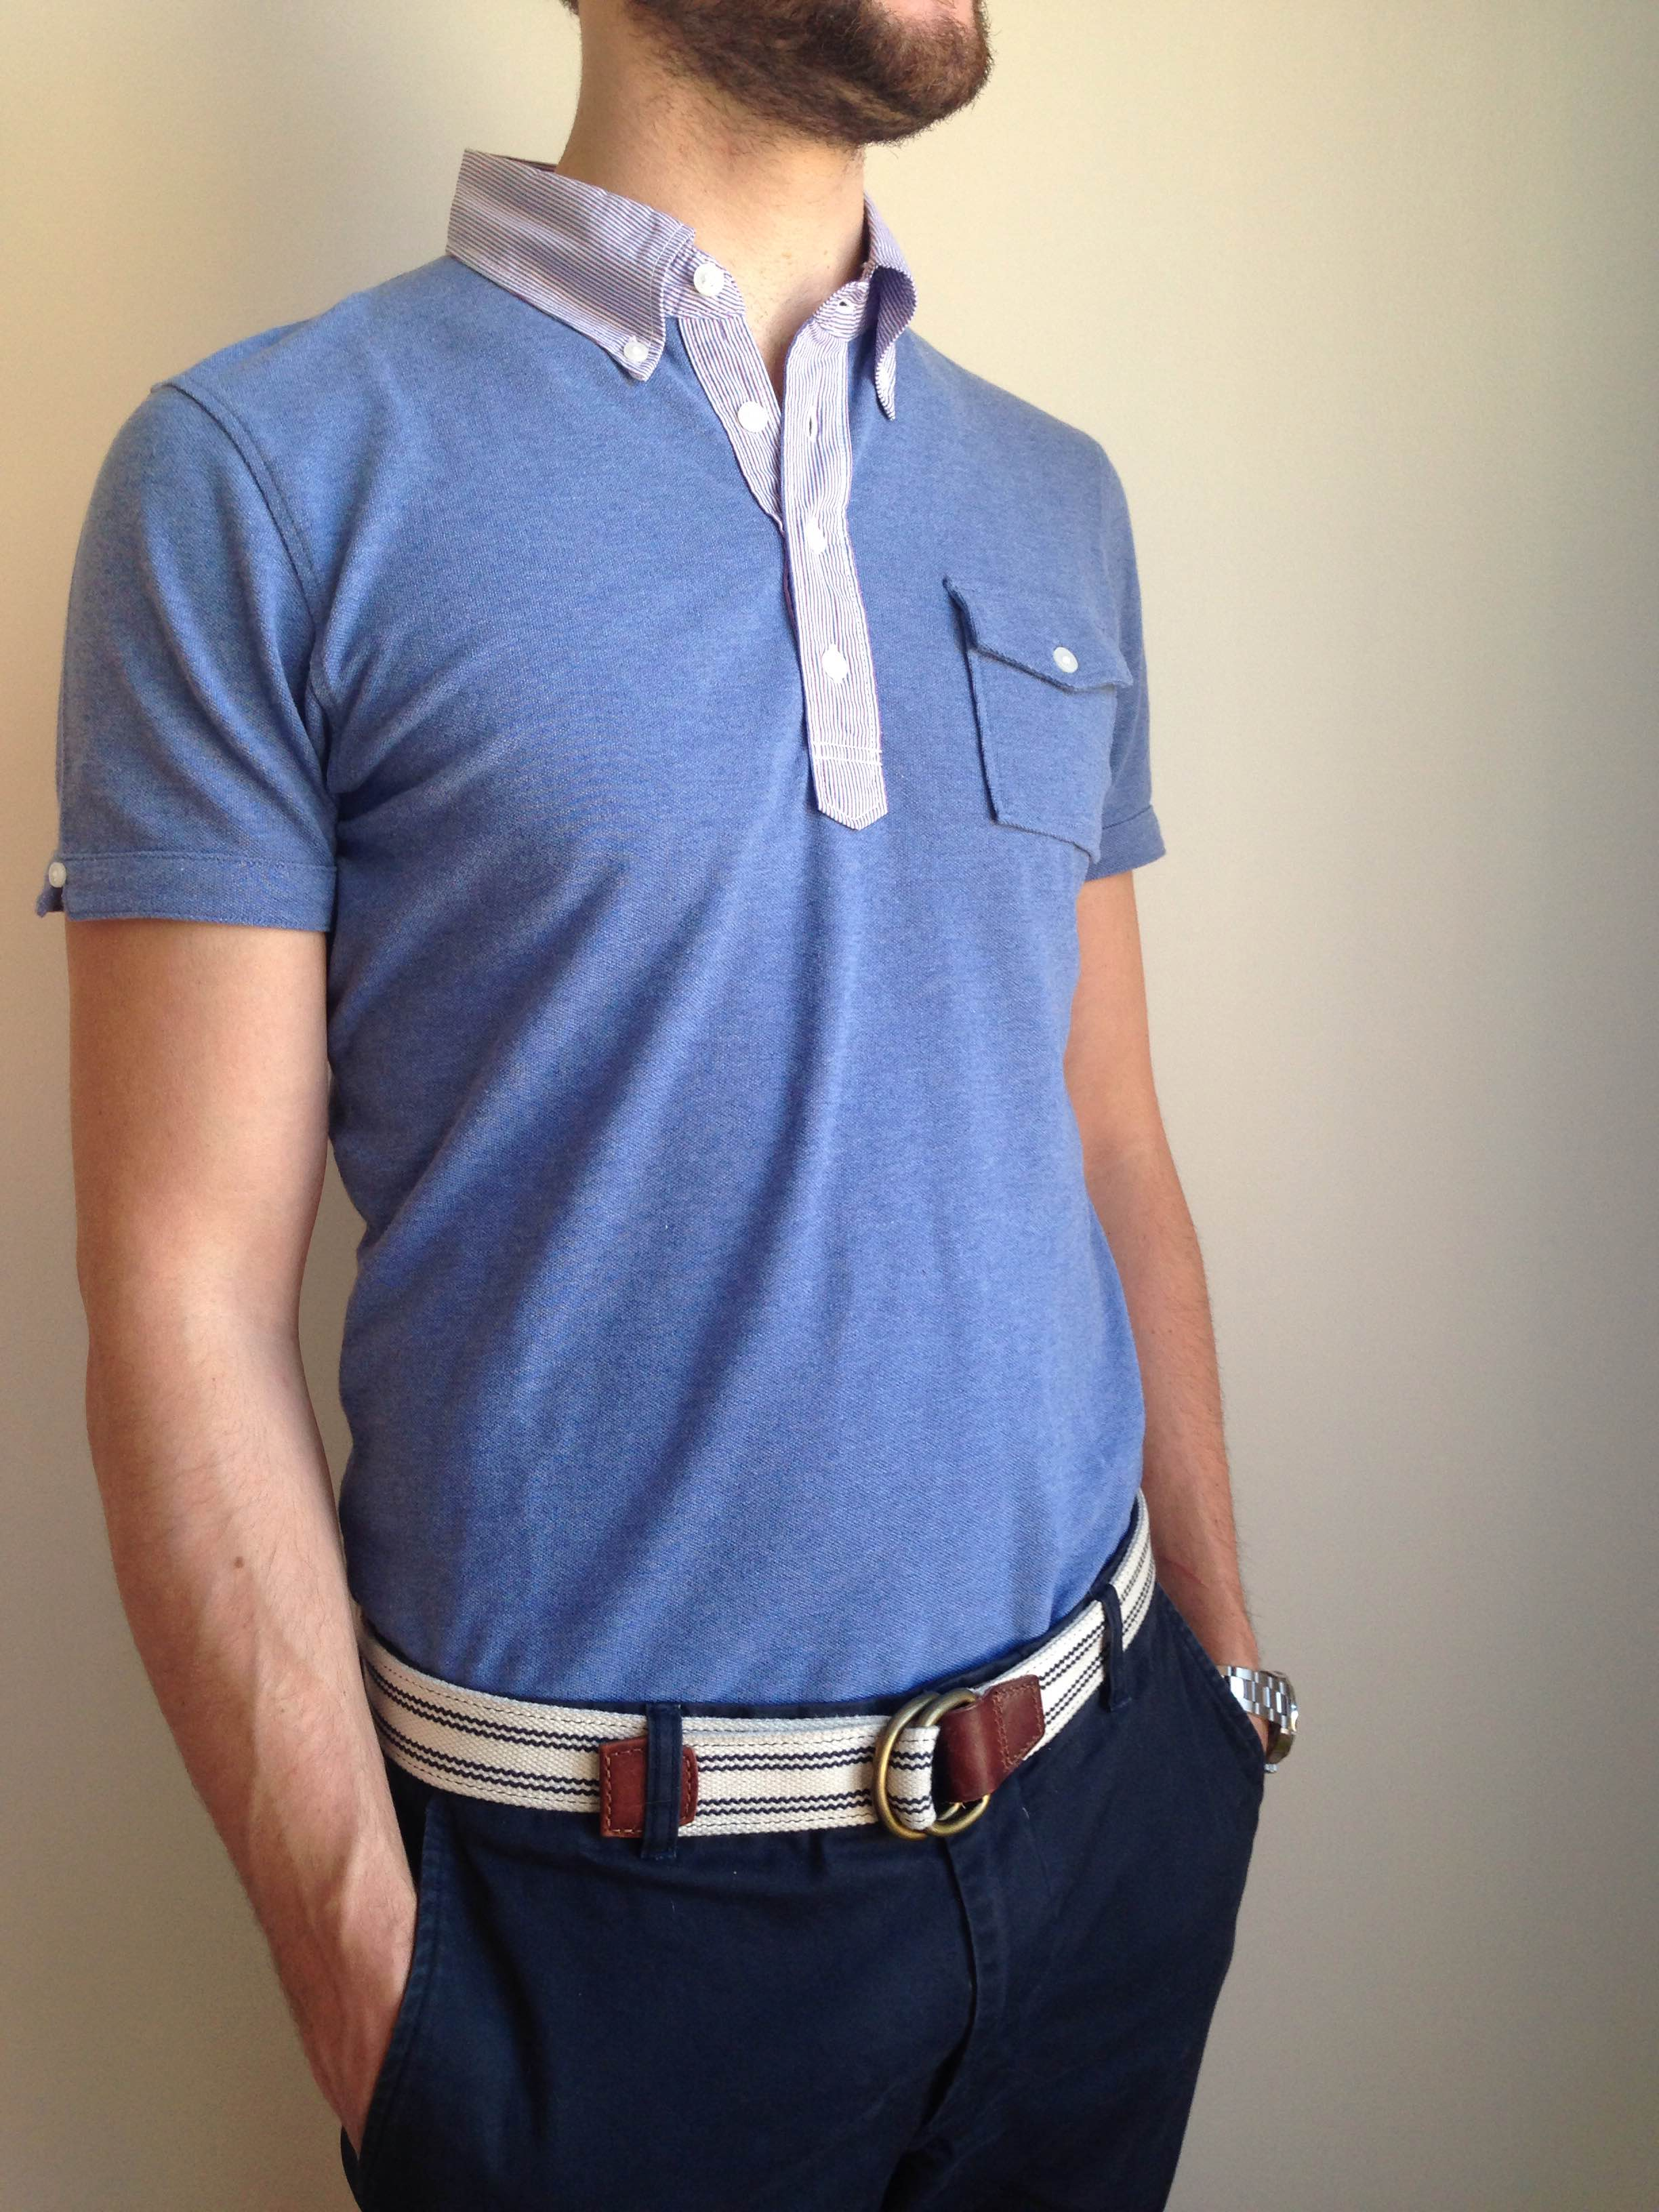 14a864e92 Washed polo by Michael Bastian x Uniqlo. Navy chinos by Bonobos. Striped  webbed belt